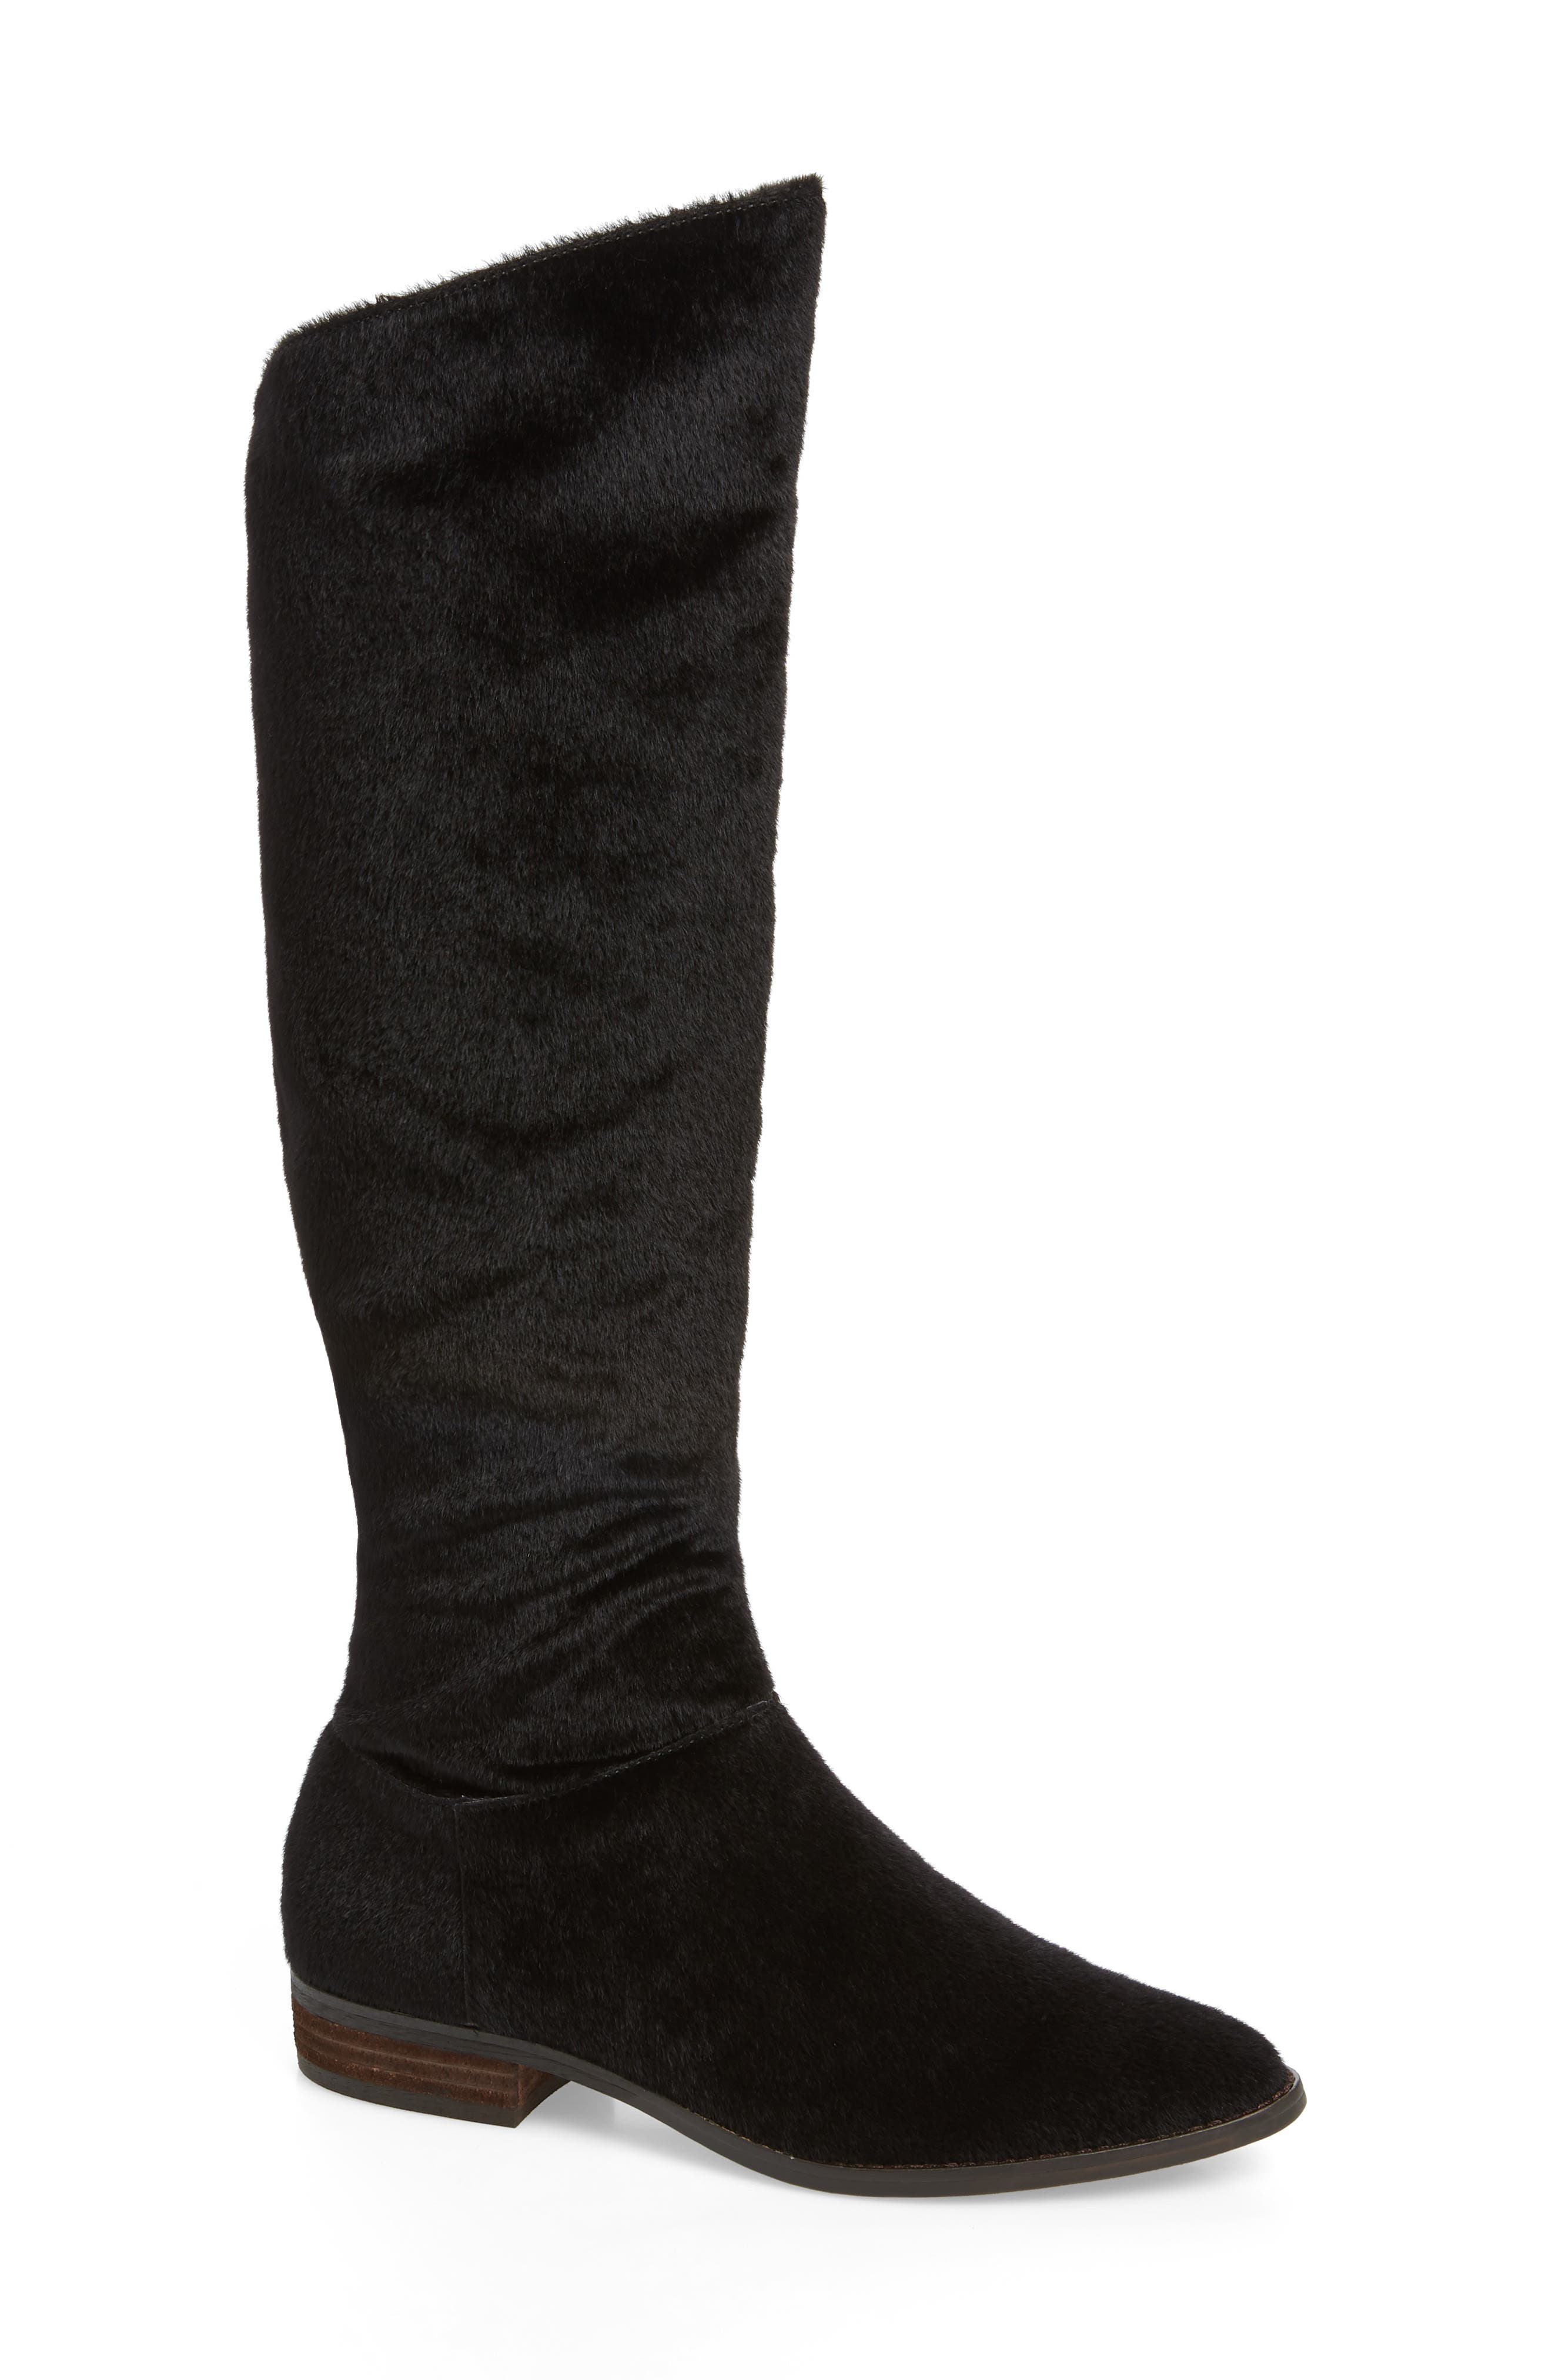 BAND OF GYPSIES Luna Over The Knee Boot in Black Faux Pony